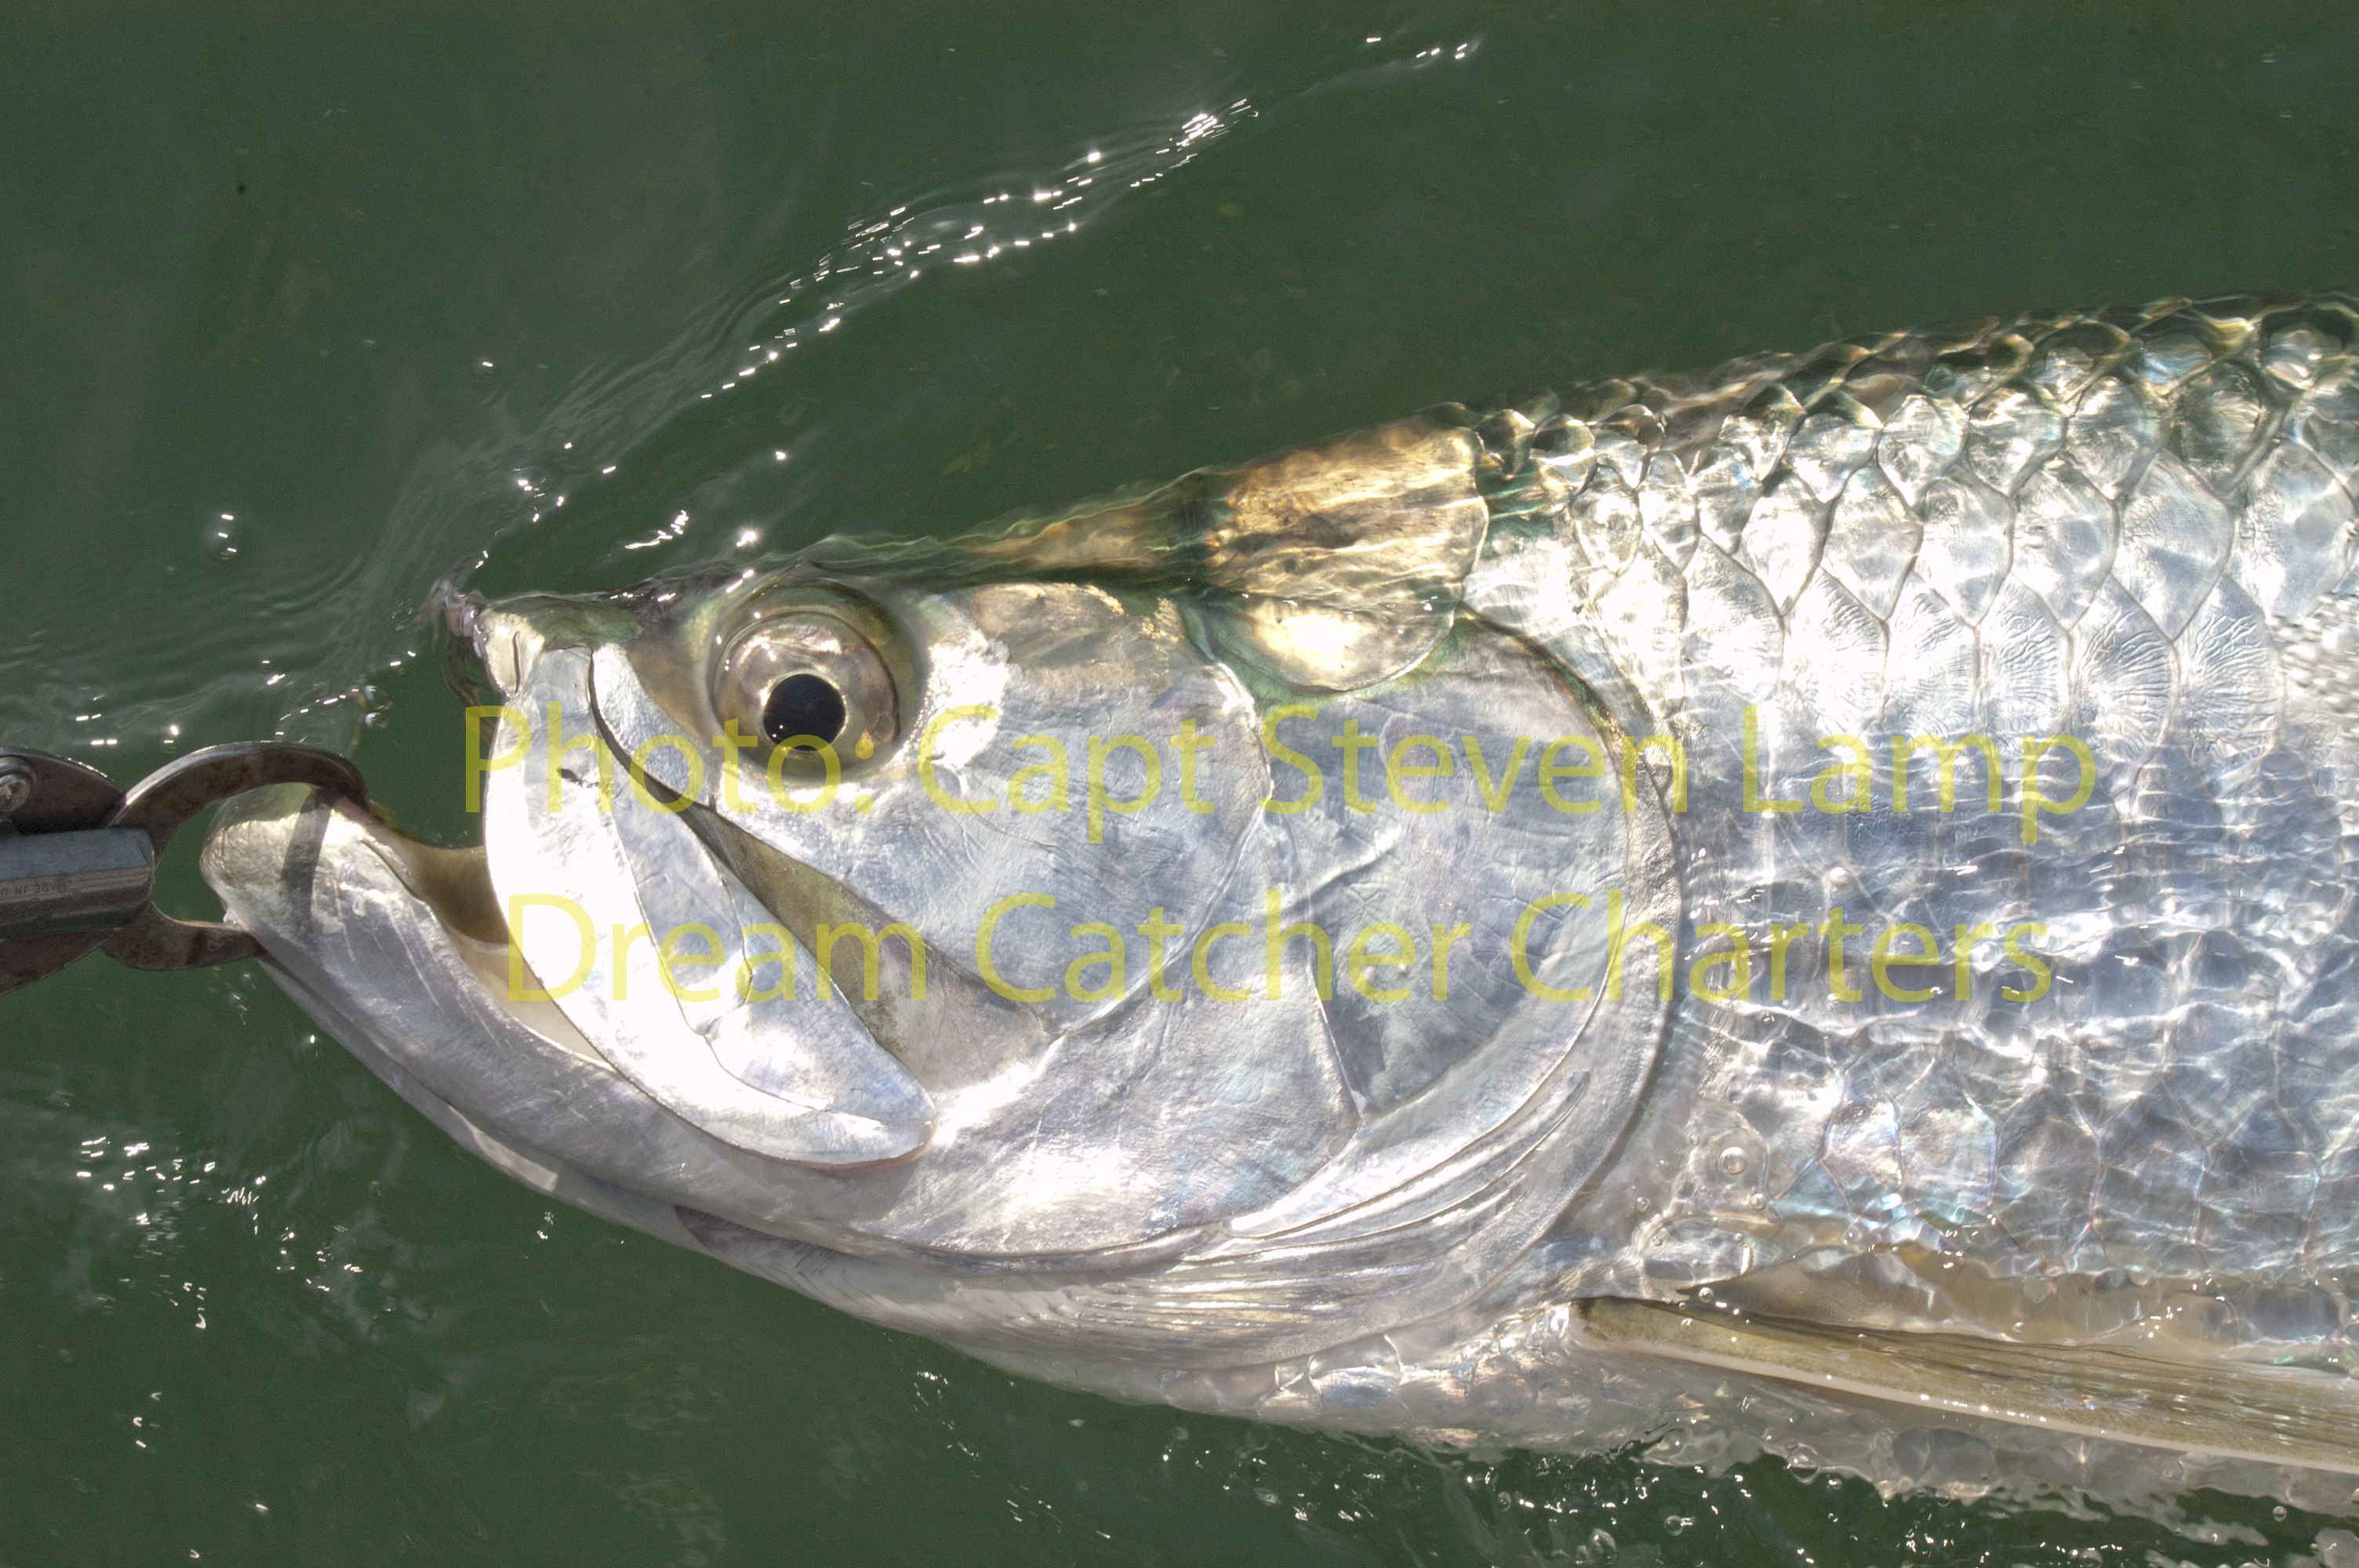 Tarpon fishing key west to chum or not to chum key west for Key west tarpon fishing